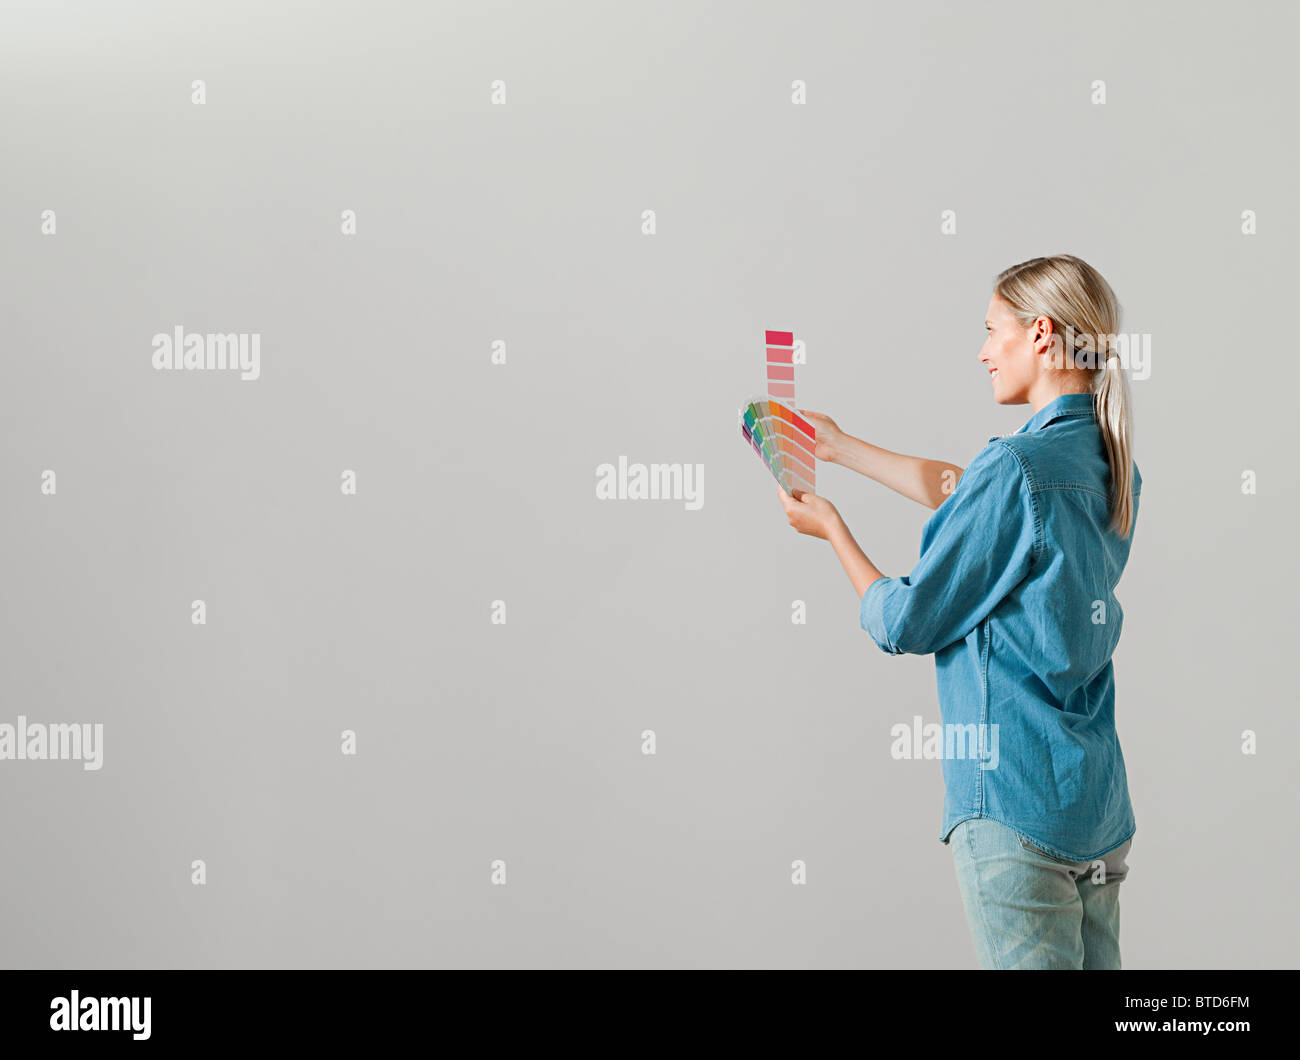 Woman Ponytail White Background Rear High Resolution Stock Photography And Images Alamy